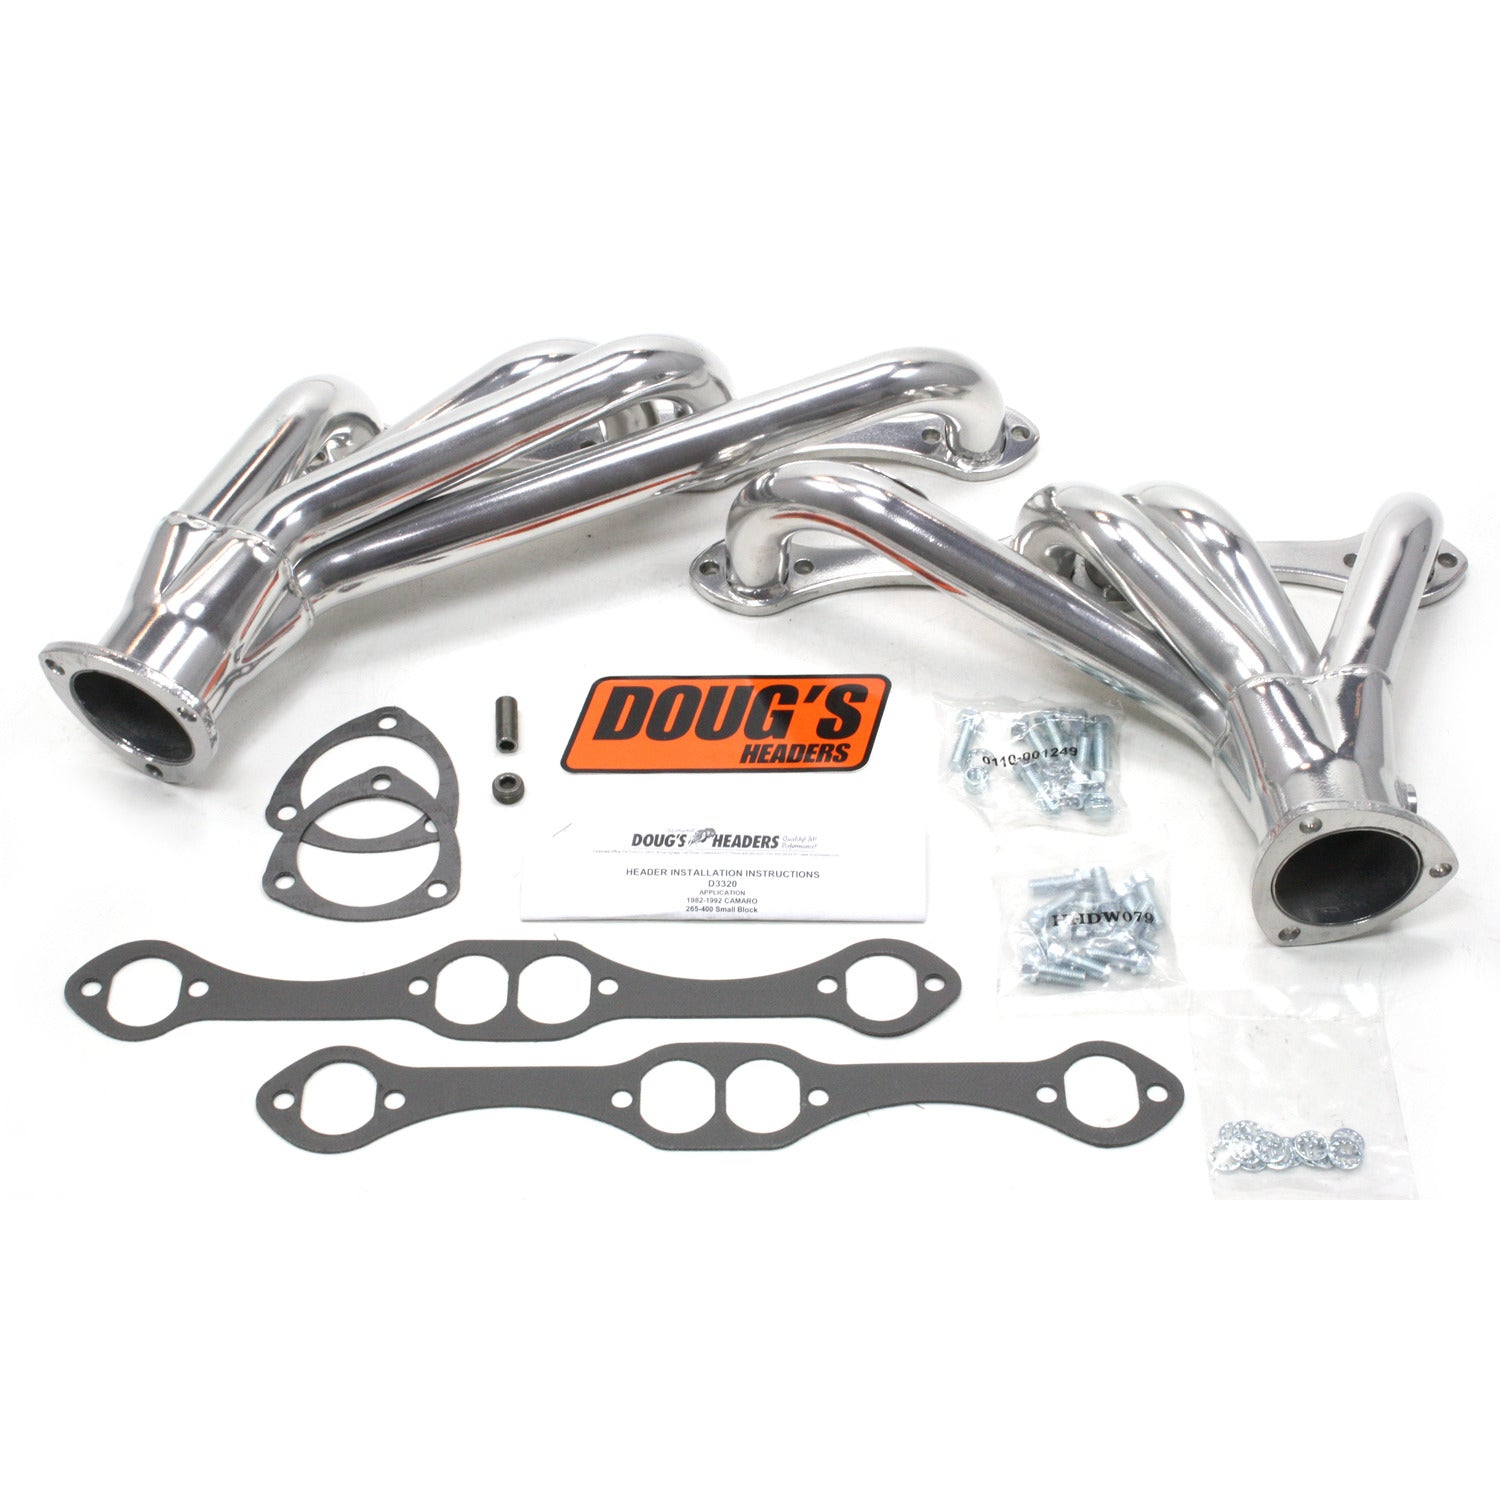 "Doug's Headers D3320 1 5/8"" 4-Tube Shorty Header Chevrolet Camaro Small Block Chevrolet 82-92 Metallic Ceramic Coating"